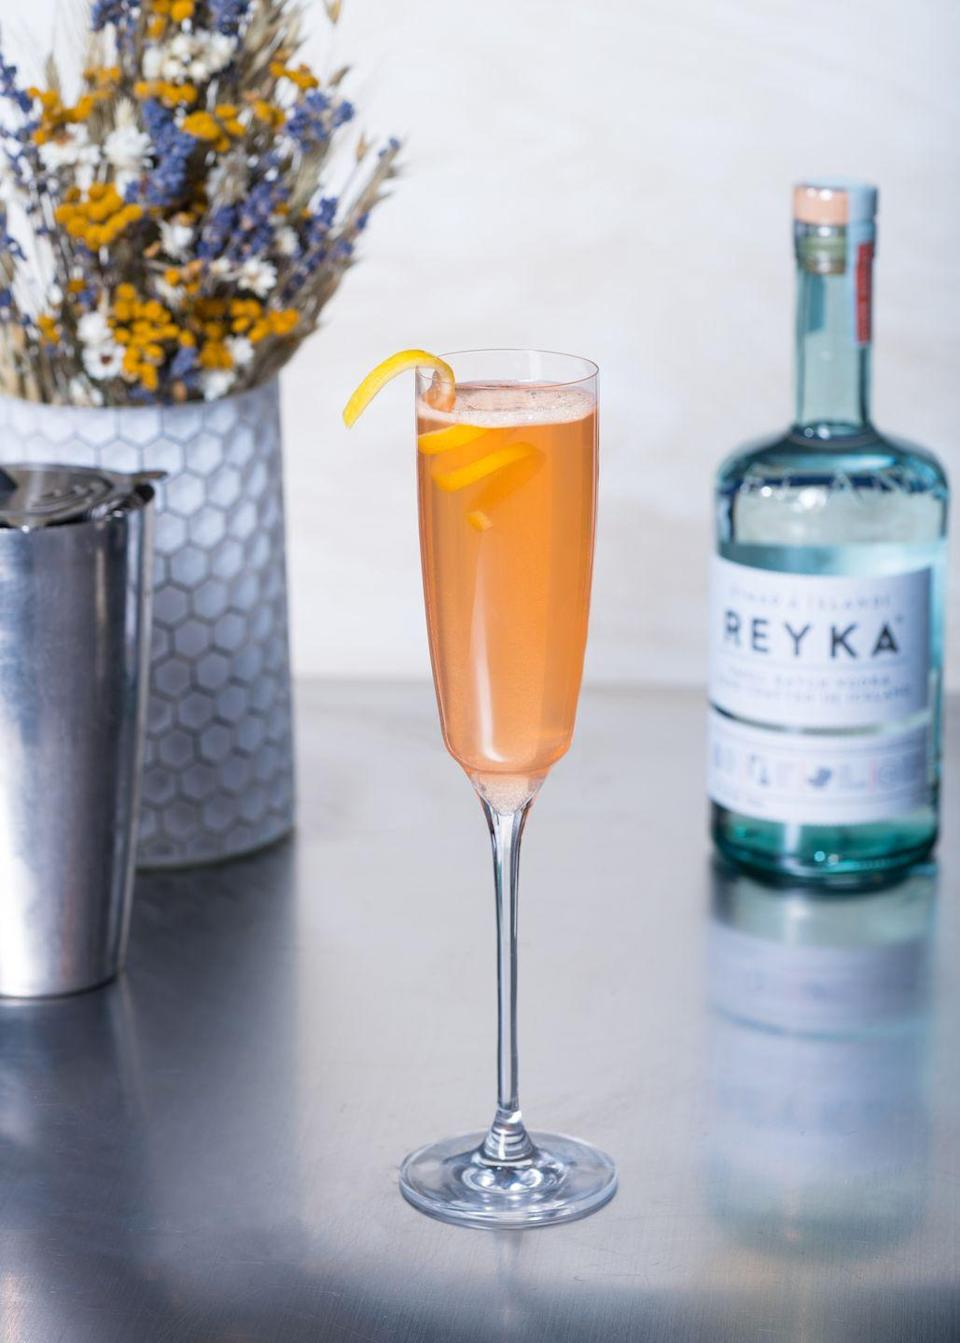 <p><strong>Ingredients</strong></p><p>1 oz Reyka Vodka <br>.5 oz Aperol <br>.5 oz honey syrup <br>.25 oz lemon juice <br>Top with champagne or prosecco </p><p><strong>Instructions</strong></p><p>Combine all ingredients except sparkling wine into a cocktail shaker. Serve in flute, top with champagne or prosecco and garnish with a lemon peel.<br></p>